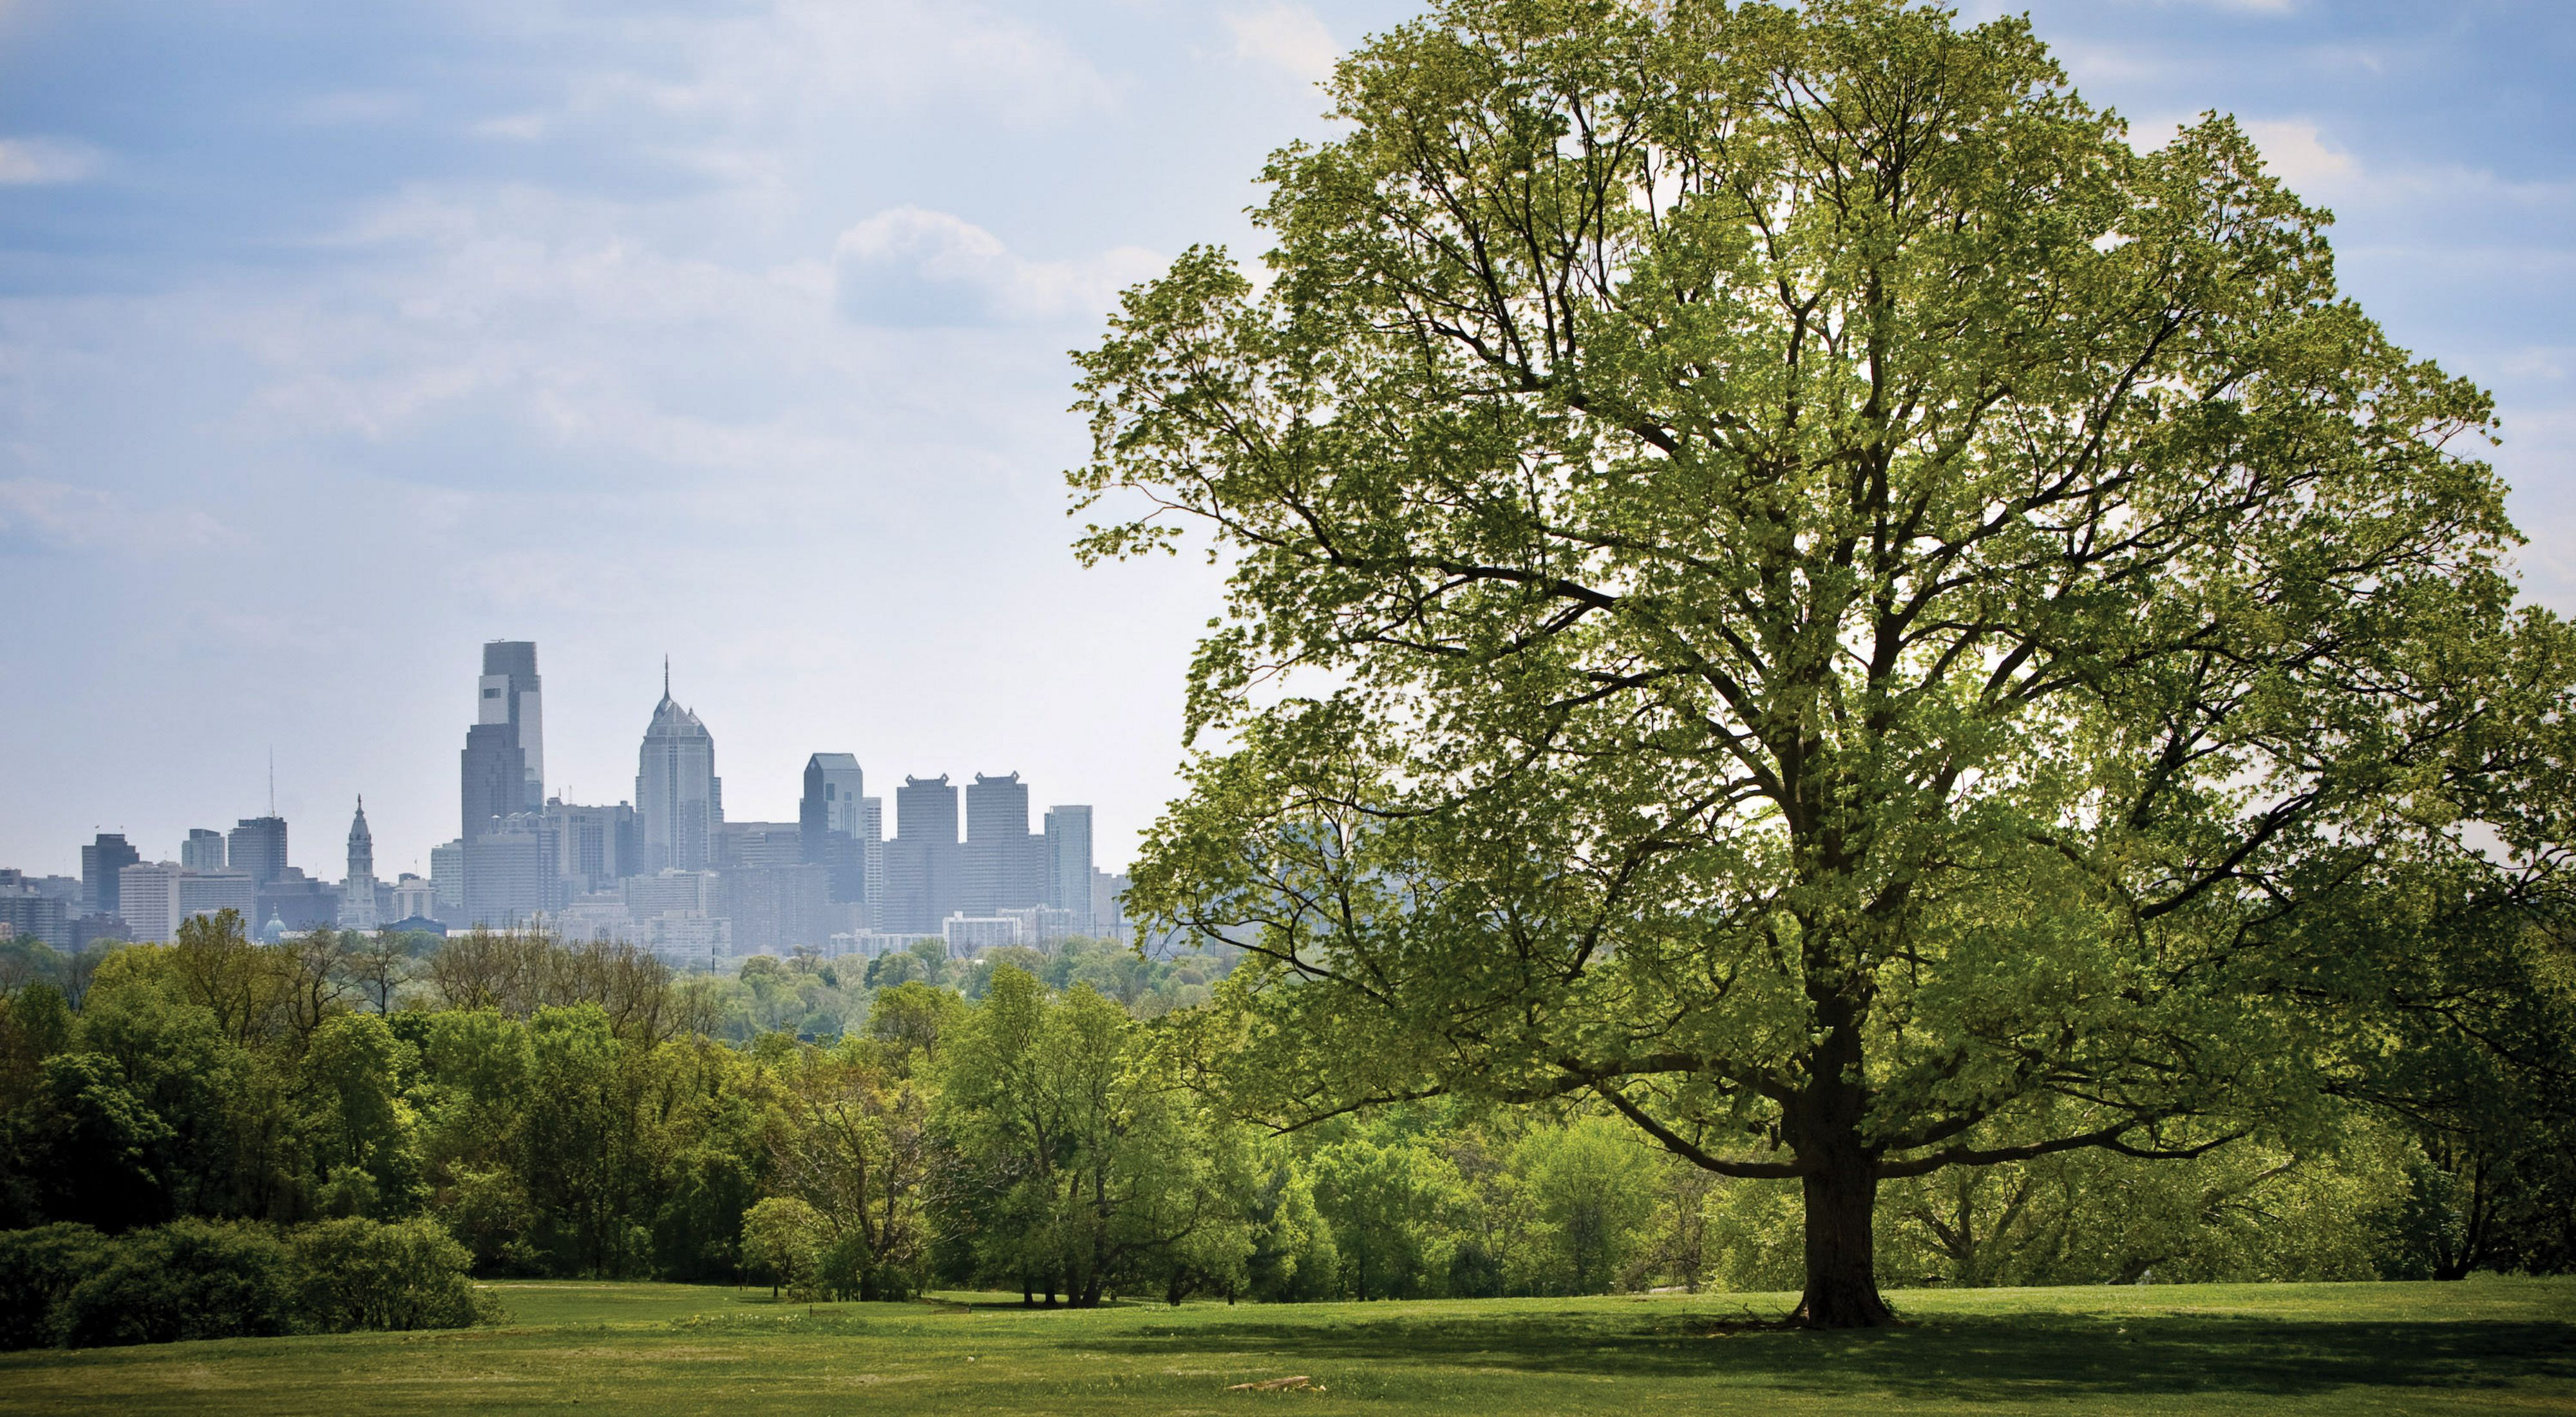 A tree in the foreground frames a city skyline in the background.